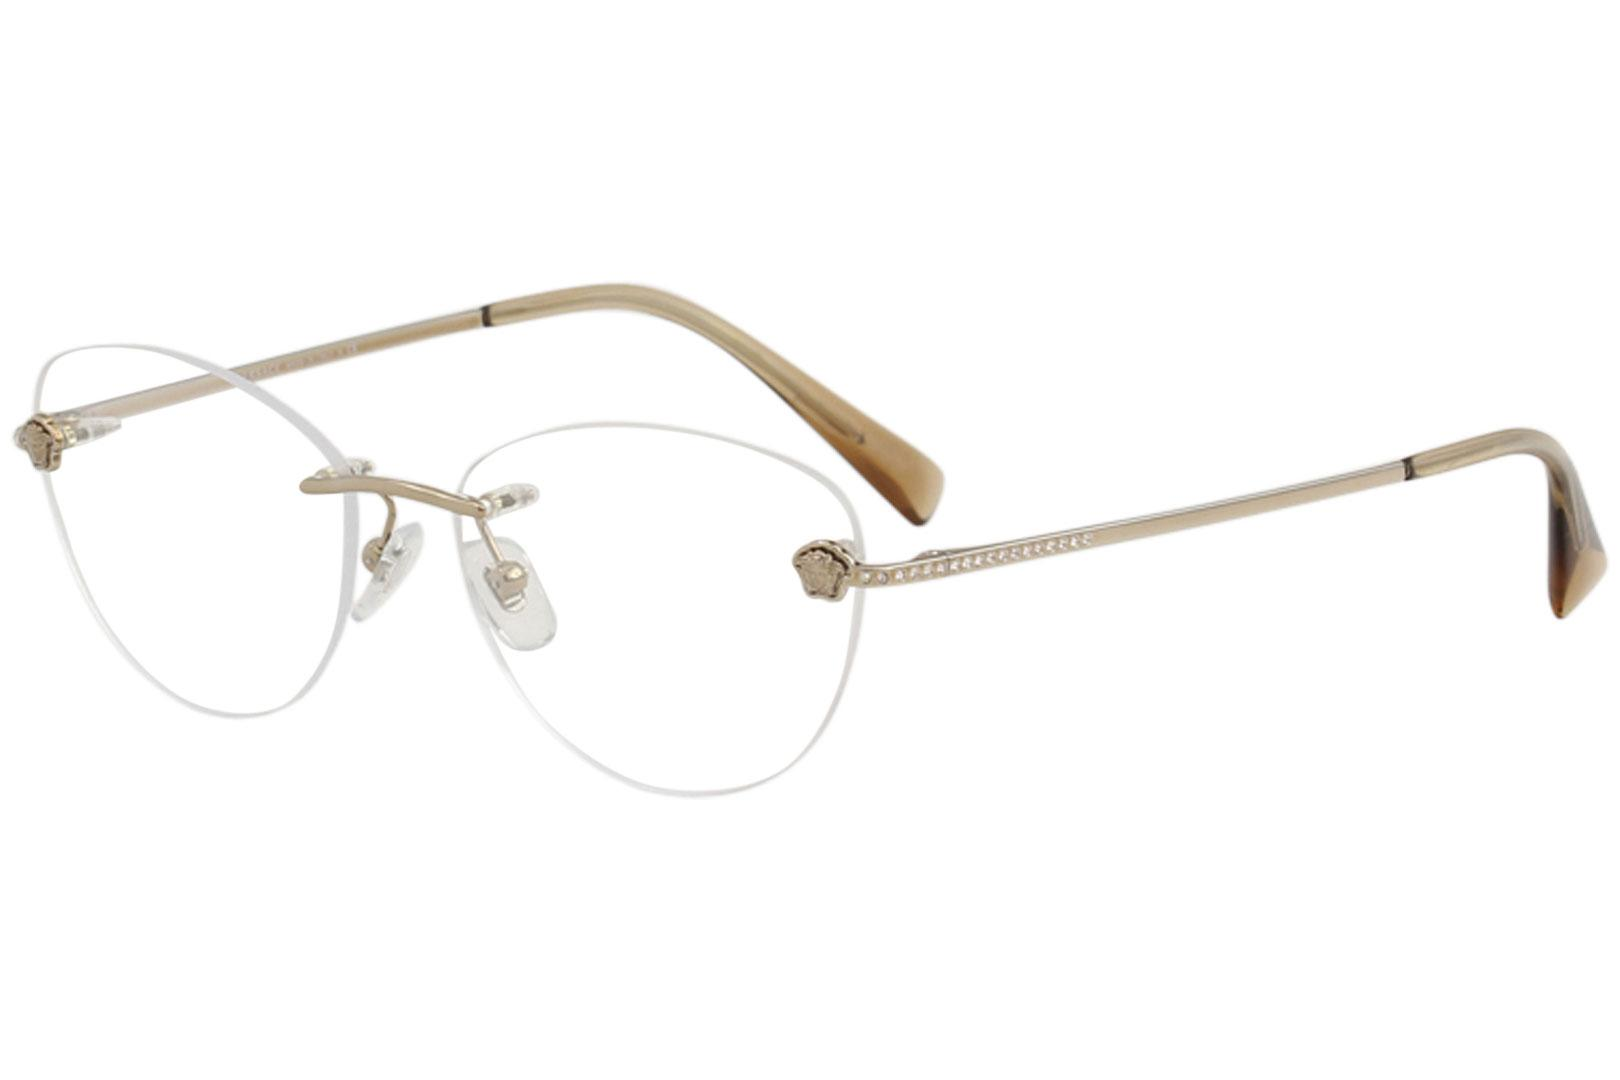 f01a7c2ca21 Versace Women s Eyeglasses VE1248B VE 1248 B Rimless Optical Frame by  Versace. Touch to zoom